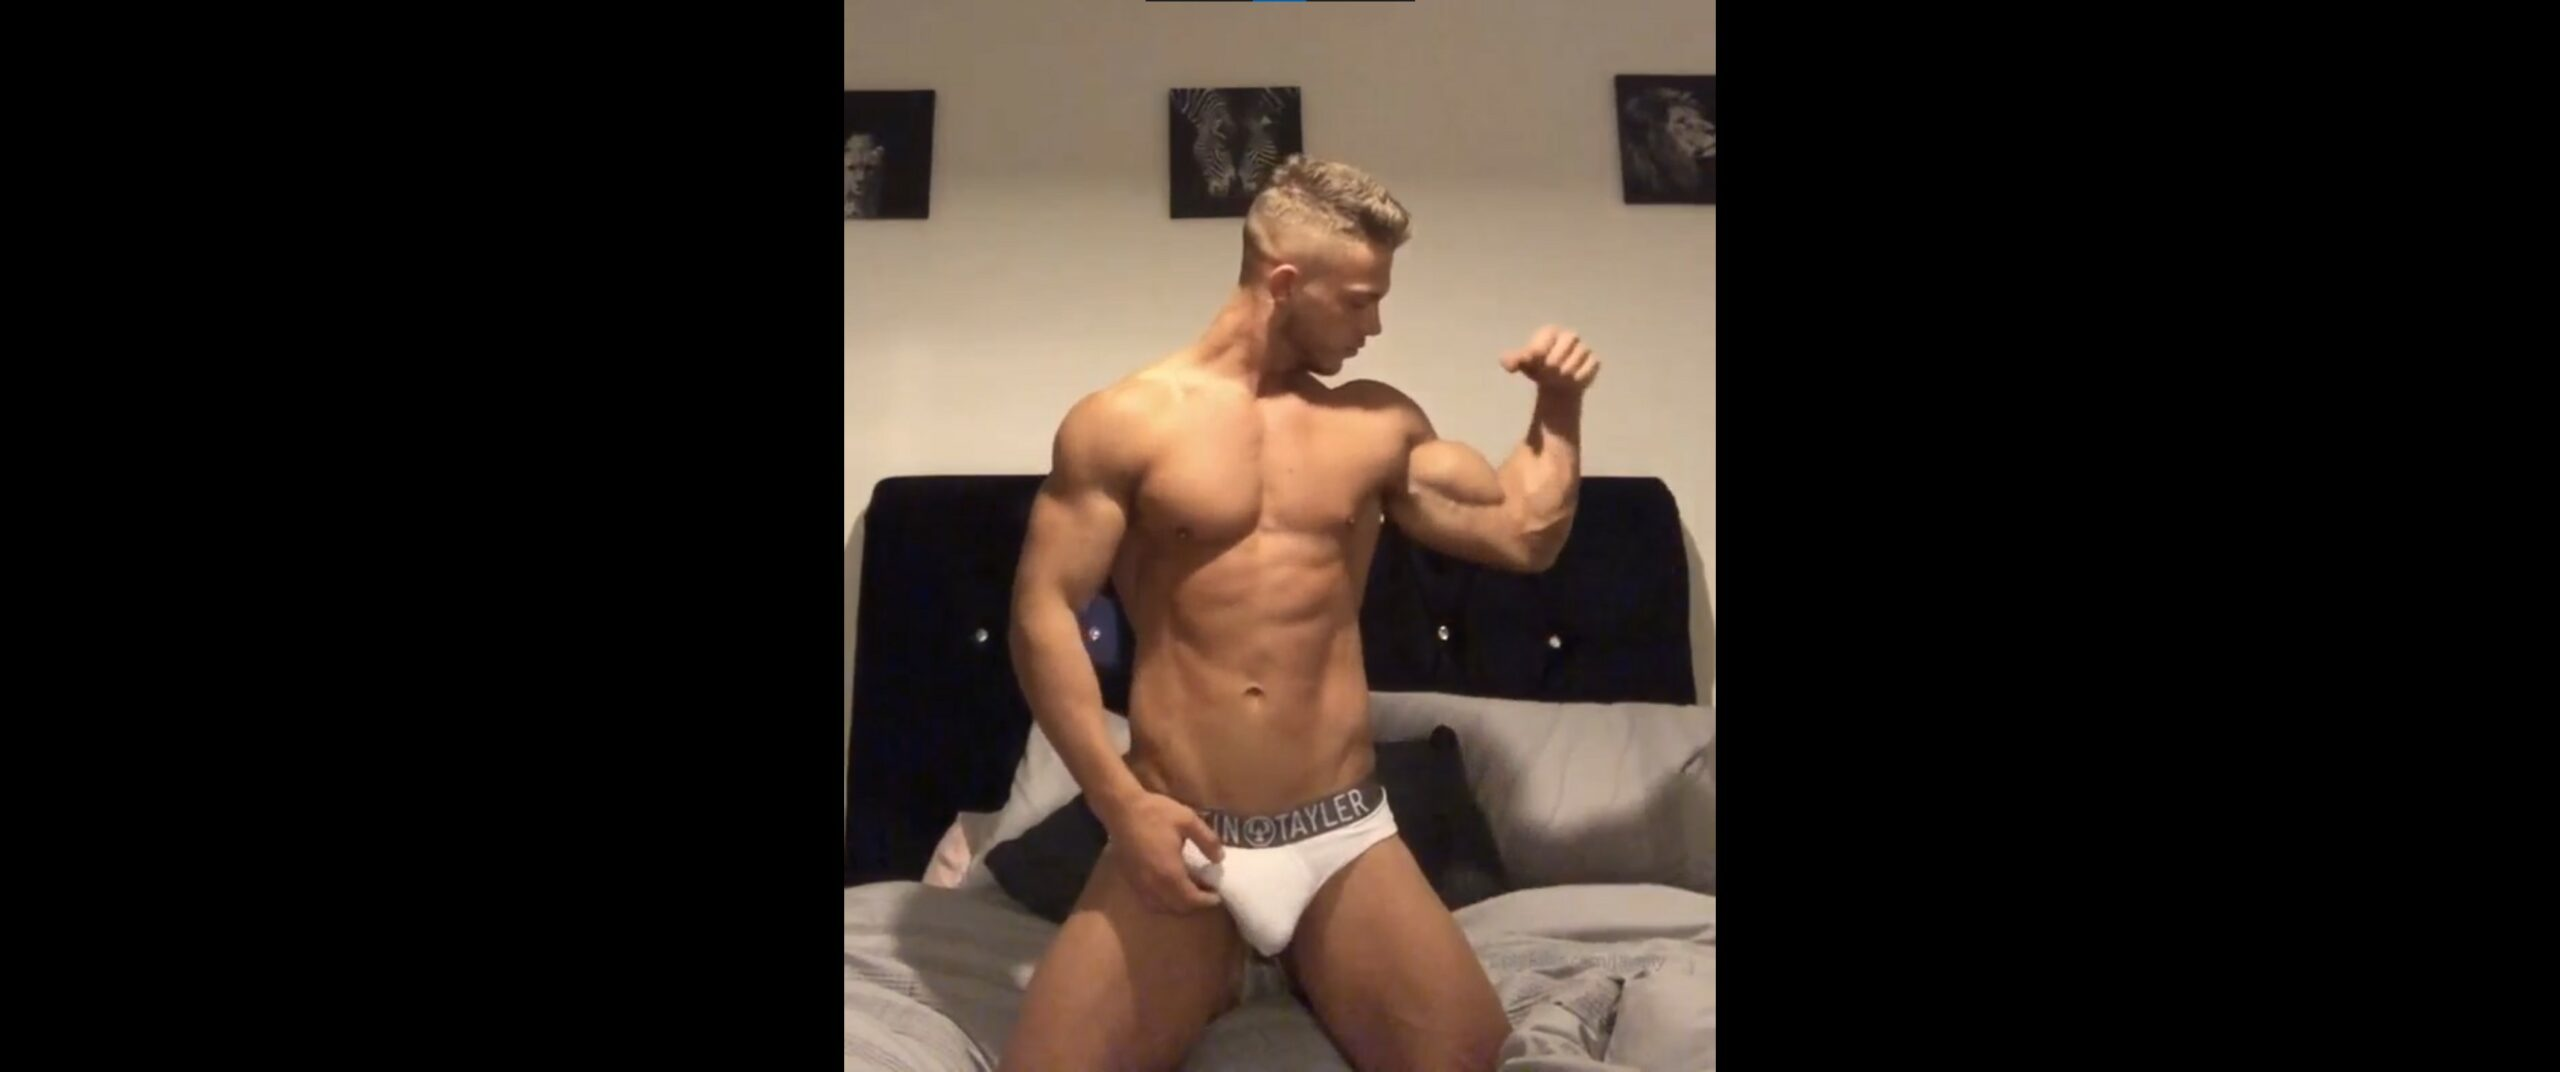 Showing off my muscles and flexing in my underwear – Joshua Tilleard (thehandsomept) – Gay for Fans – gayforfans.com